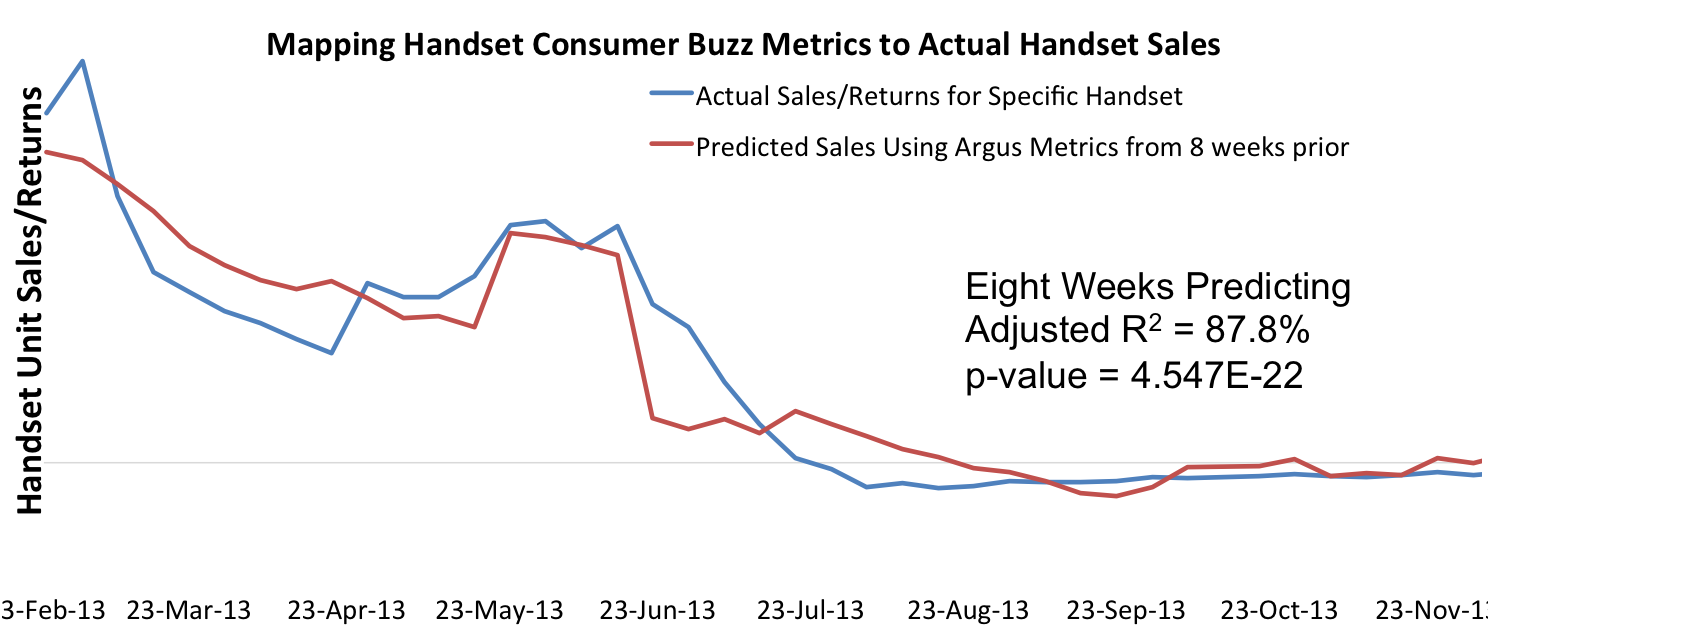 Major handset manufacturer leveraged Argus Insights metrics to predict handset demand 8 weeks into the future